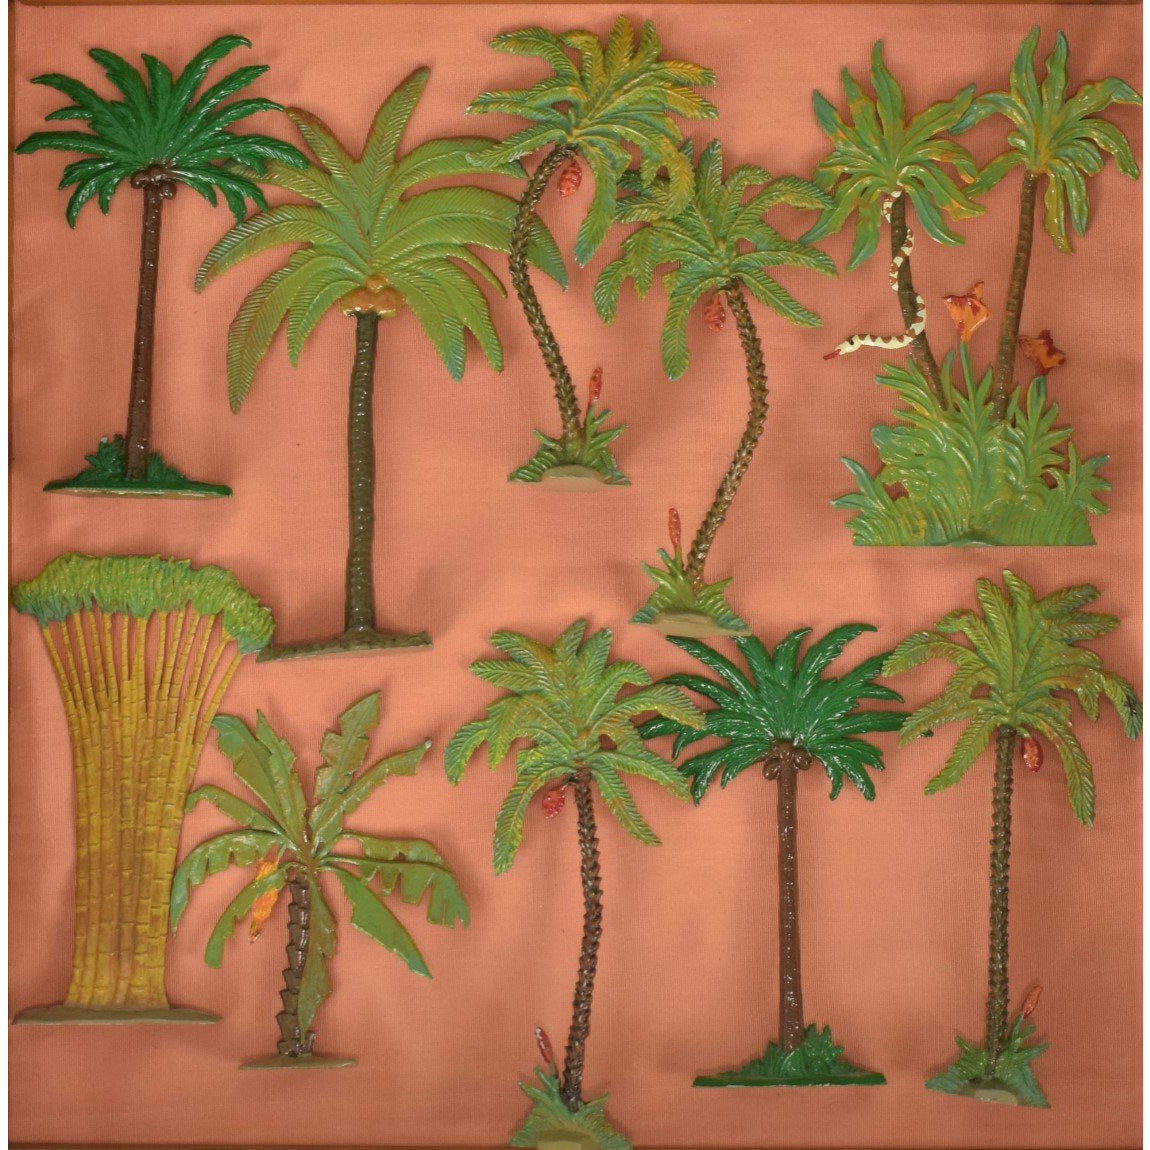 Set of 10 Hand-Painted Palm Trees